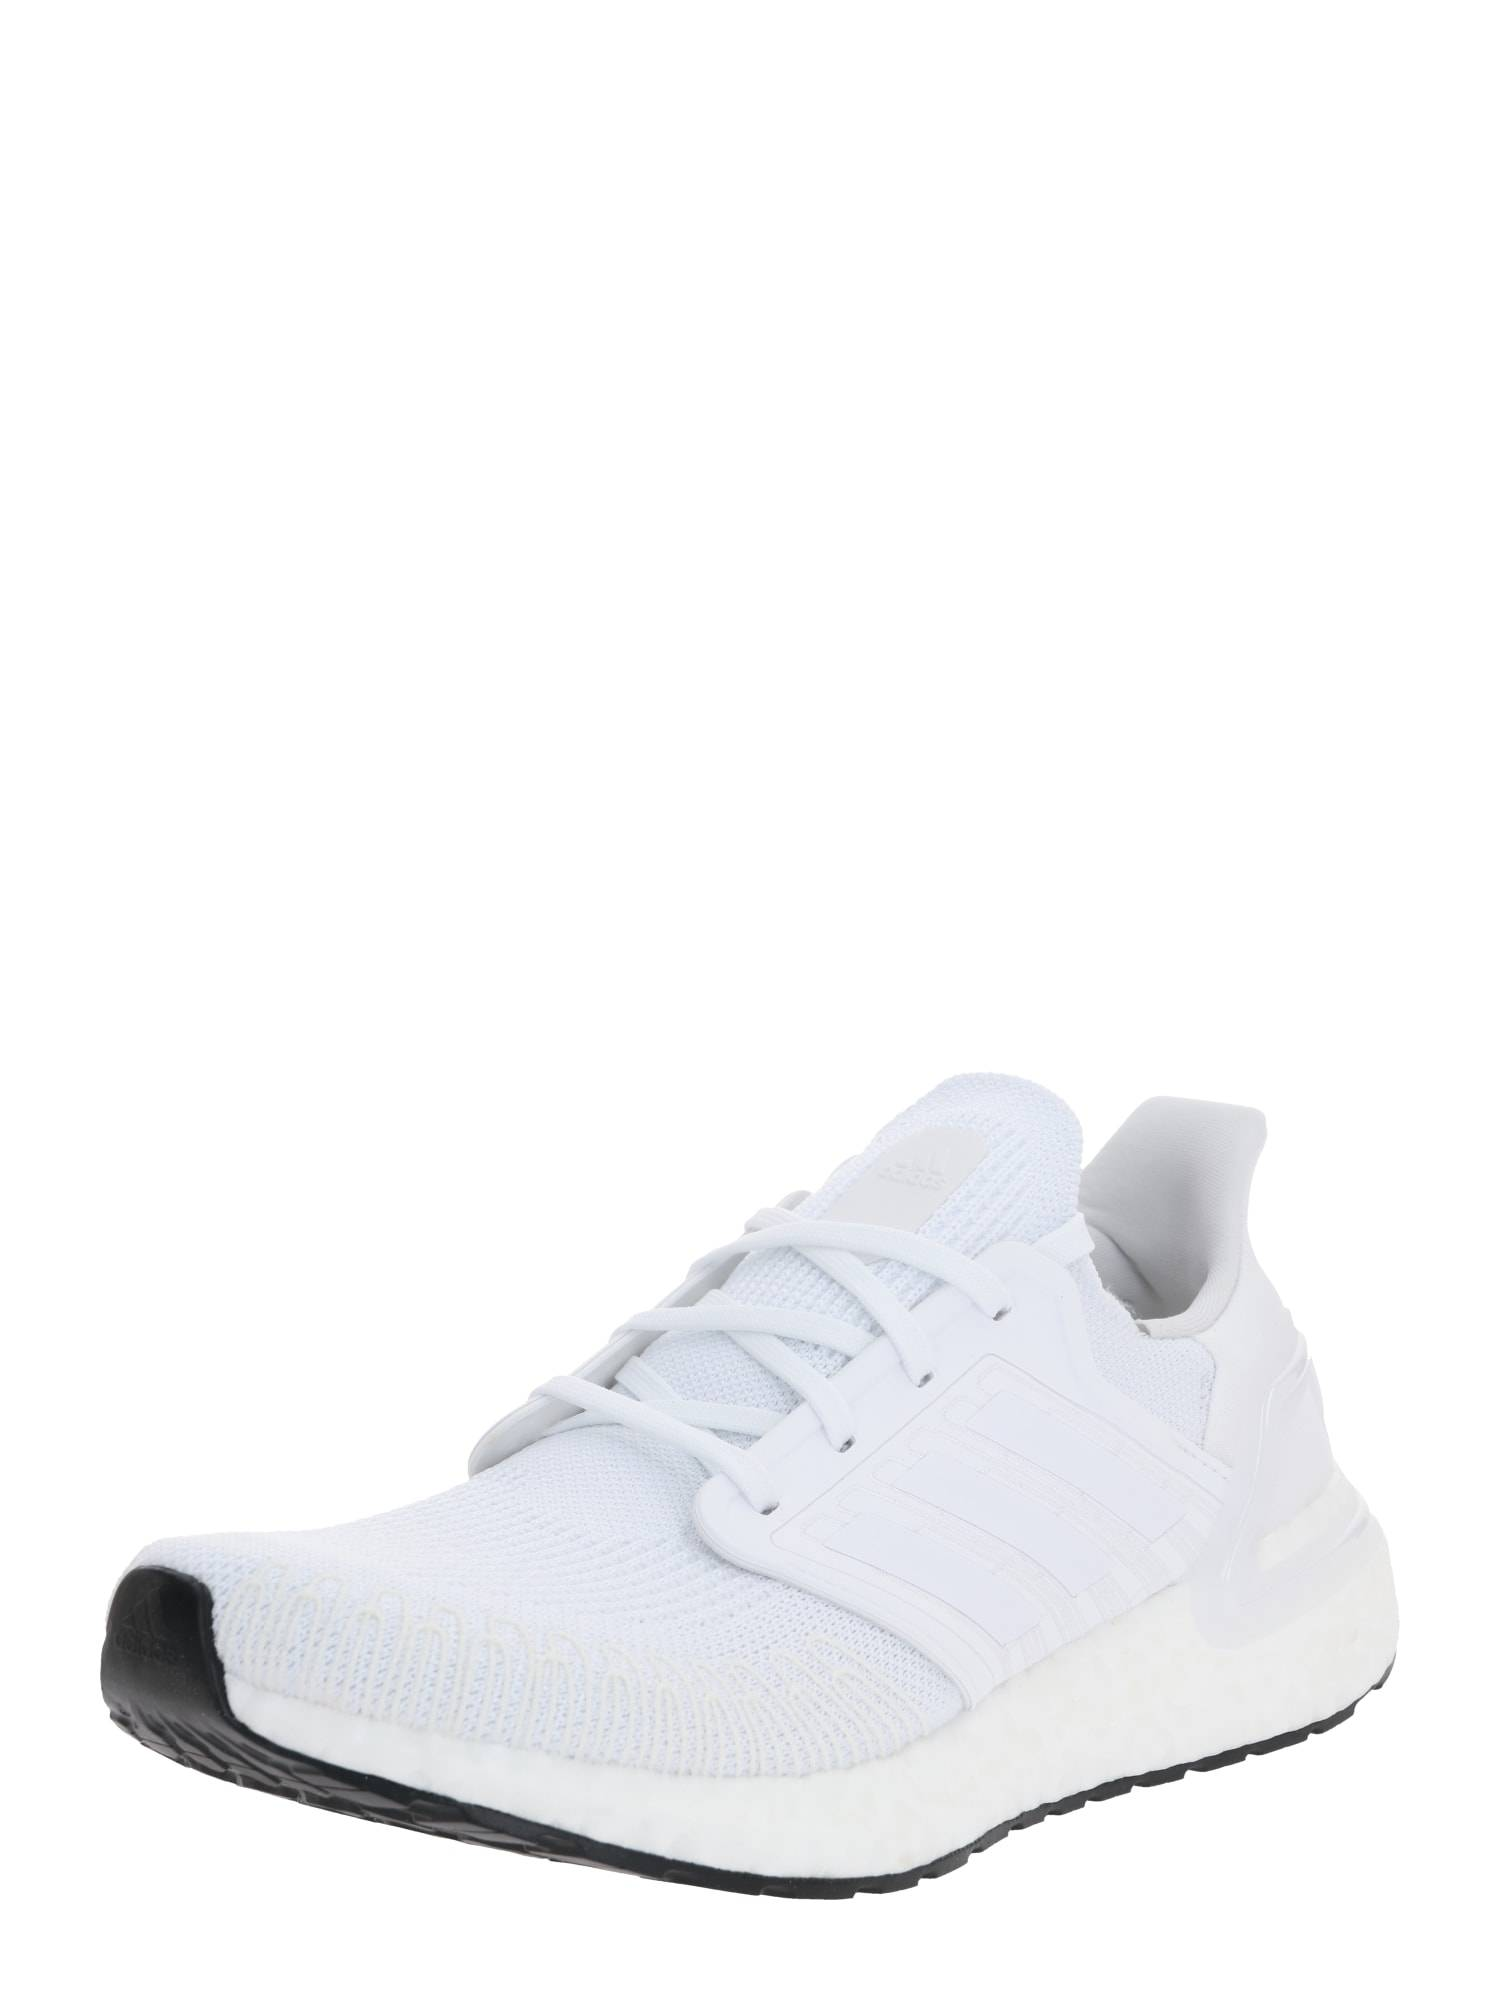 ADIDAS PERFORMANCE Chaussure de course 'Ultraboost 20'  - Blanc - Taille: 40.5-41 - male